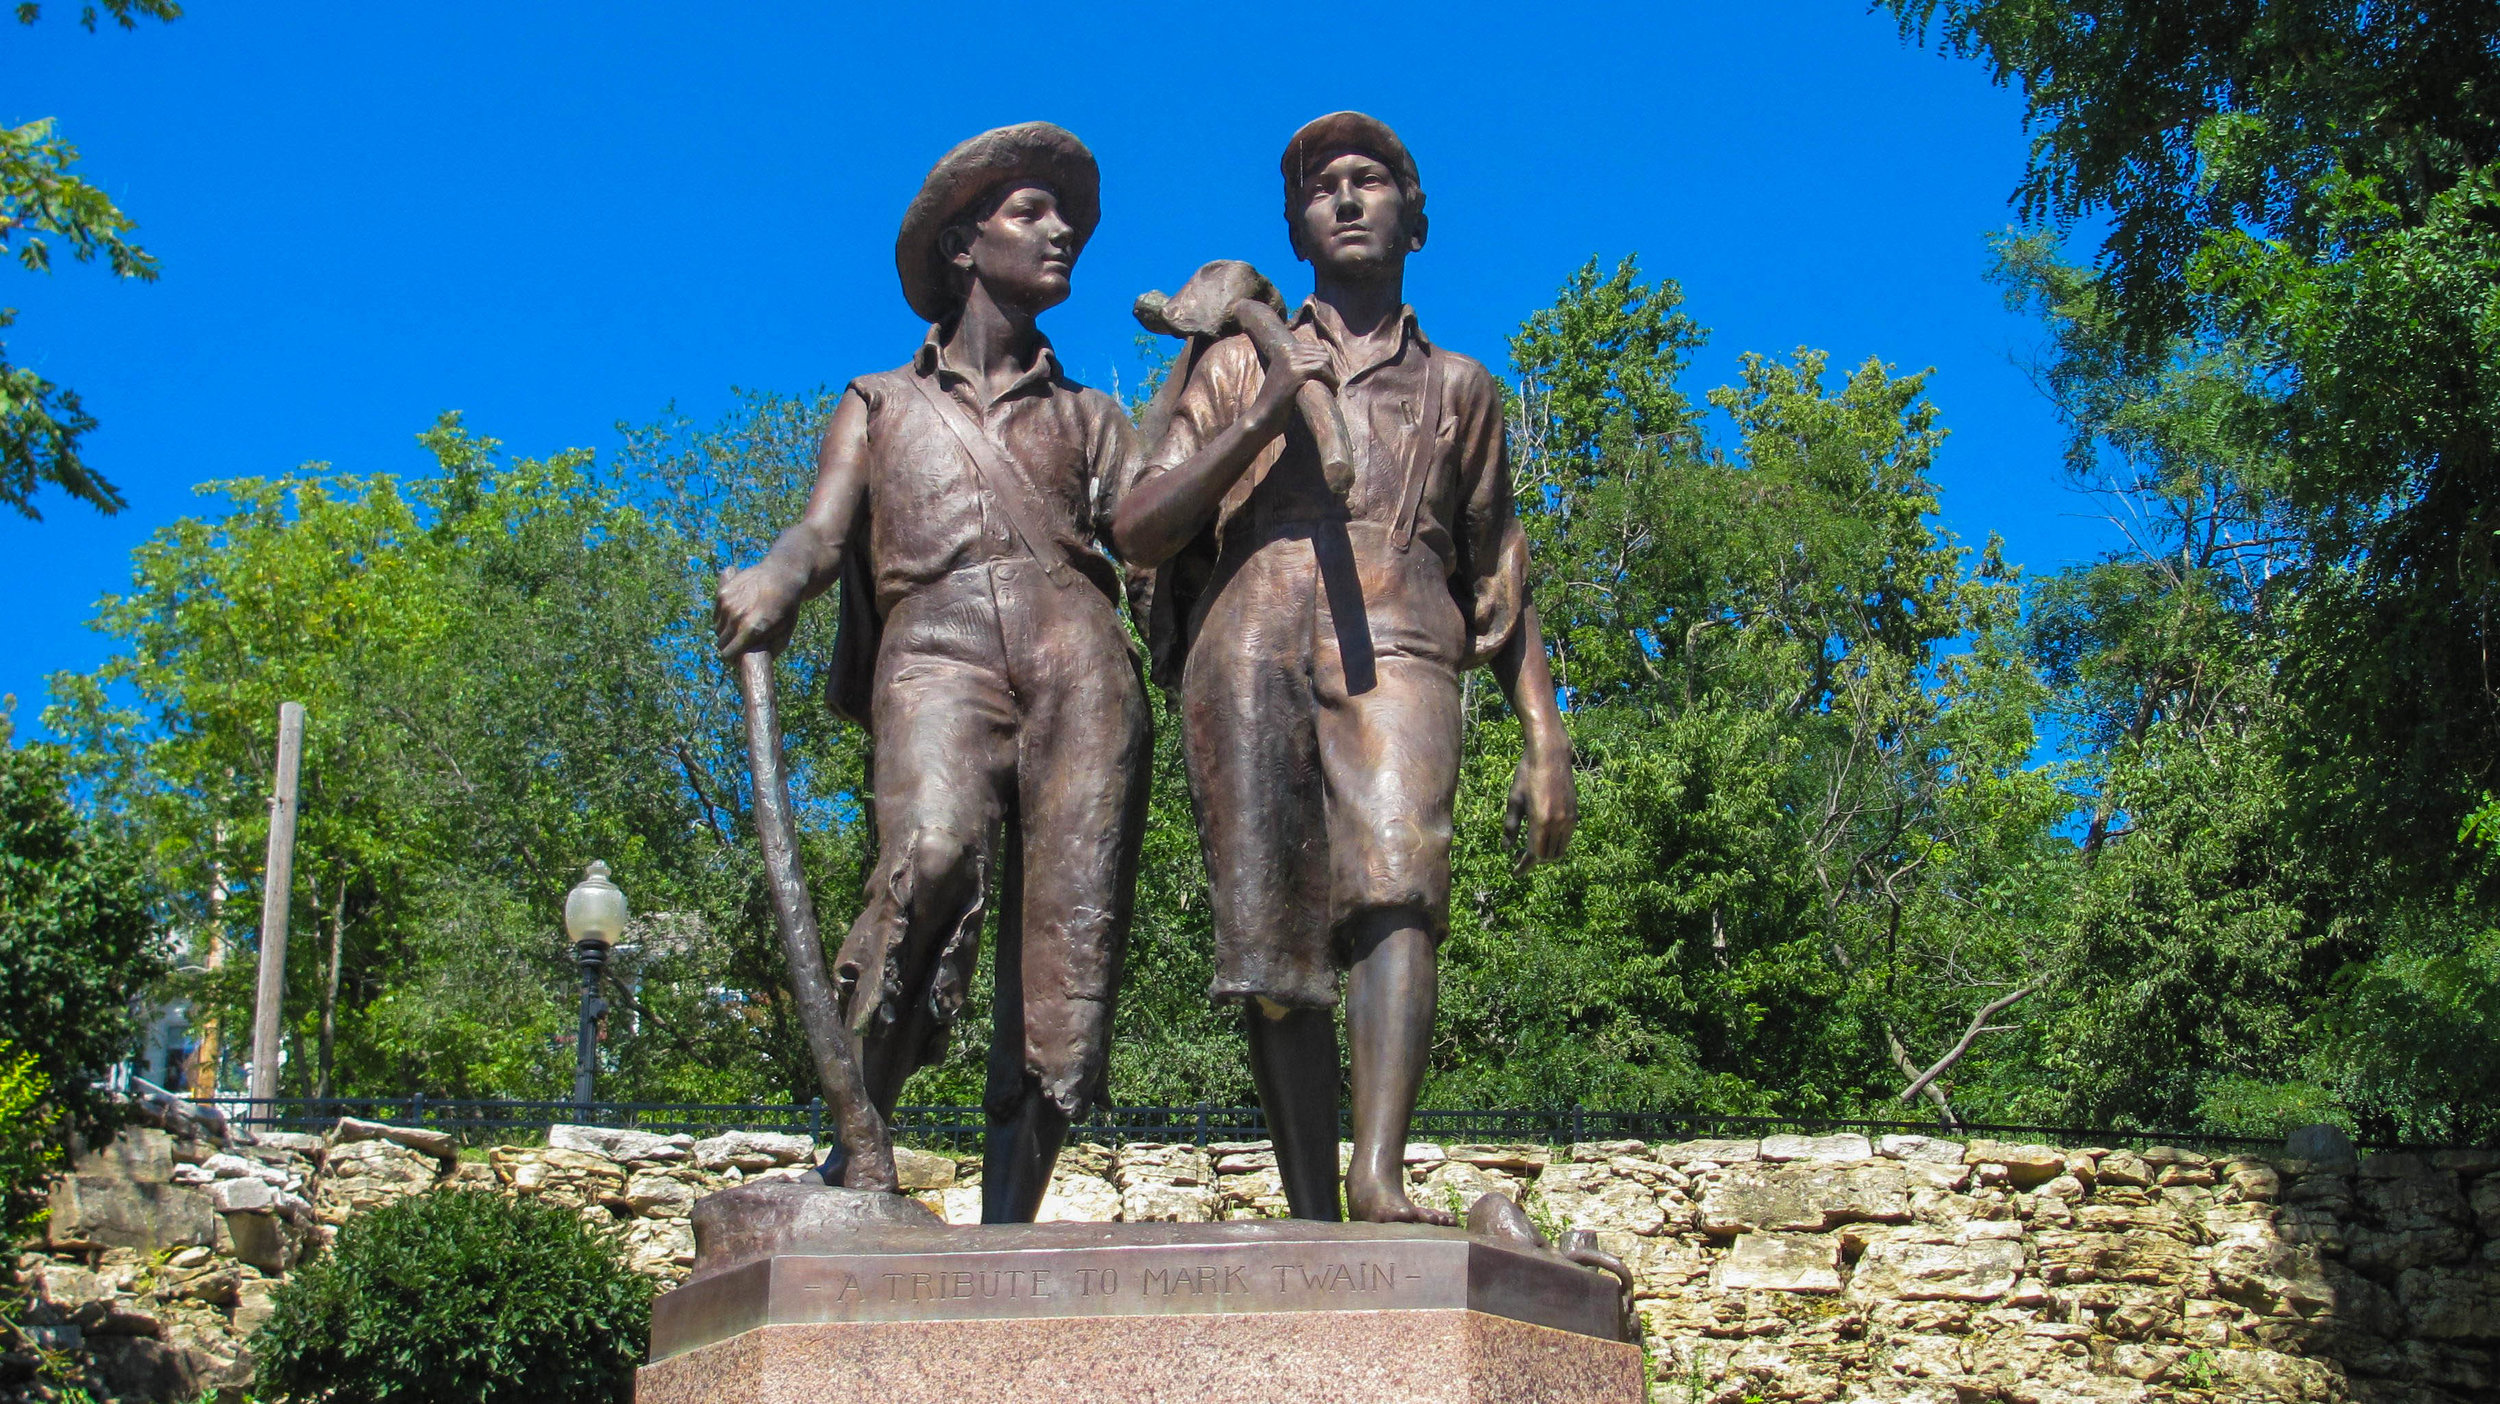 Tom and Huck Statue in Hannibal